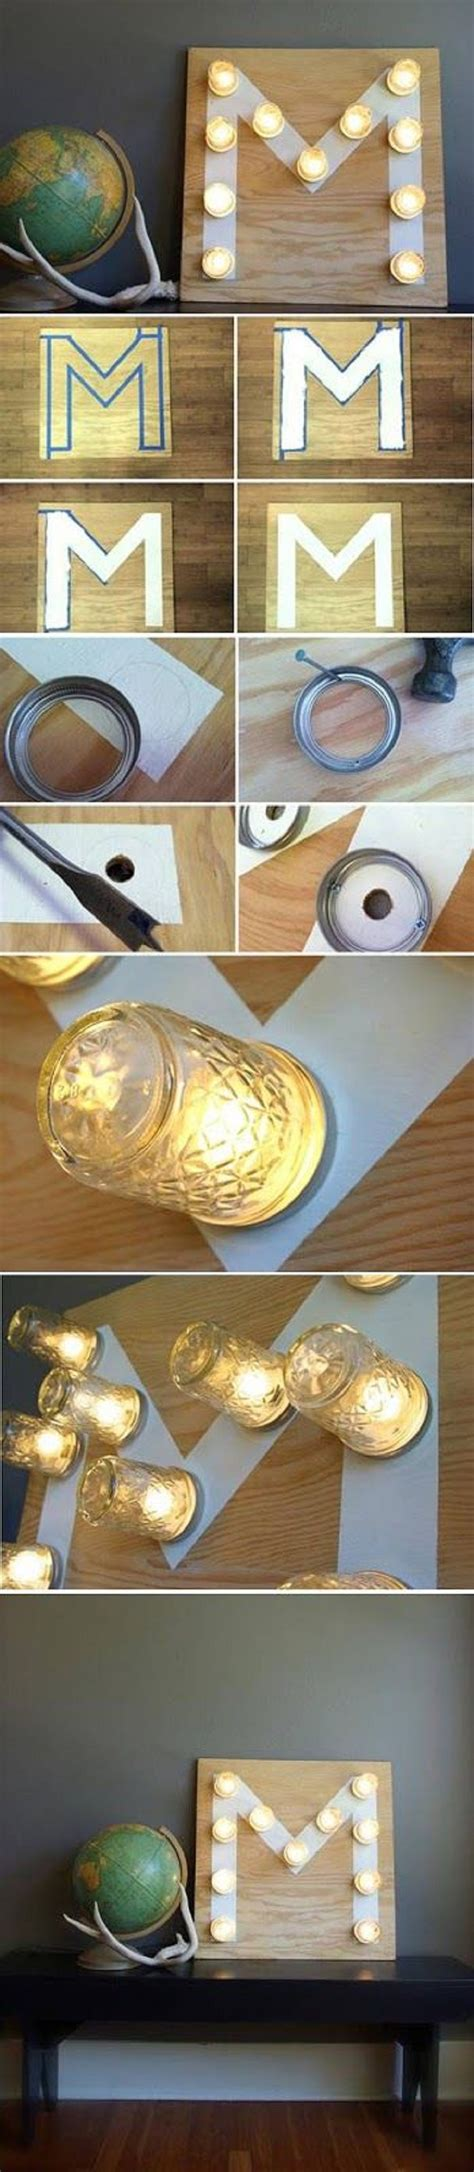 home decor diy projects top 10 home decor diy ideas top inspired